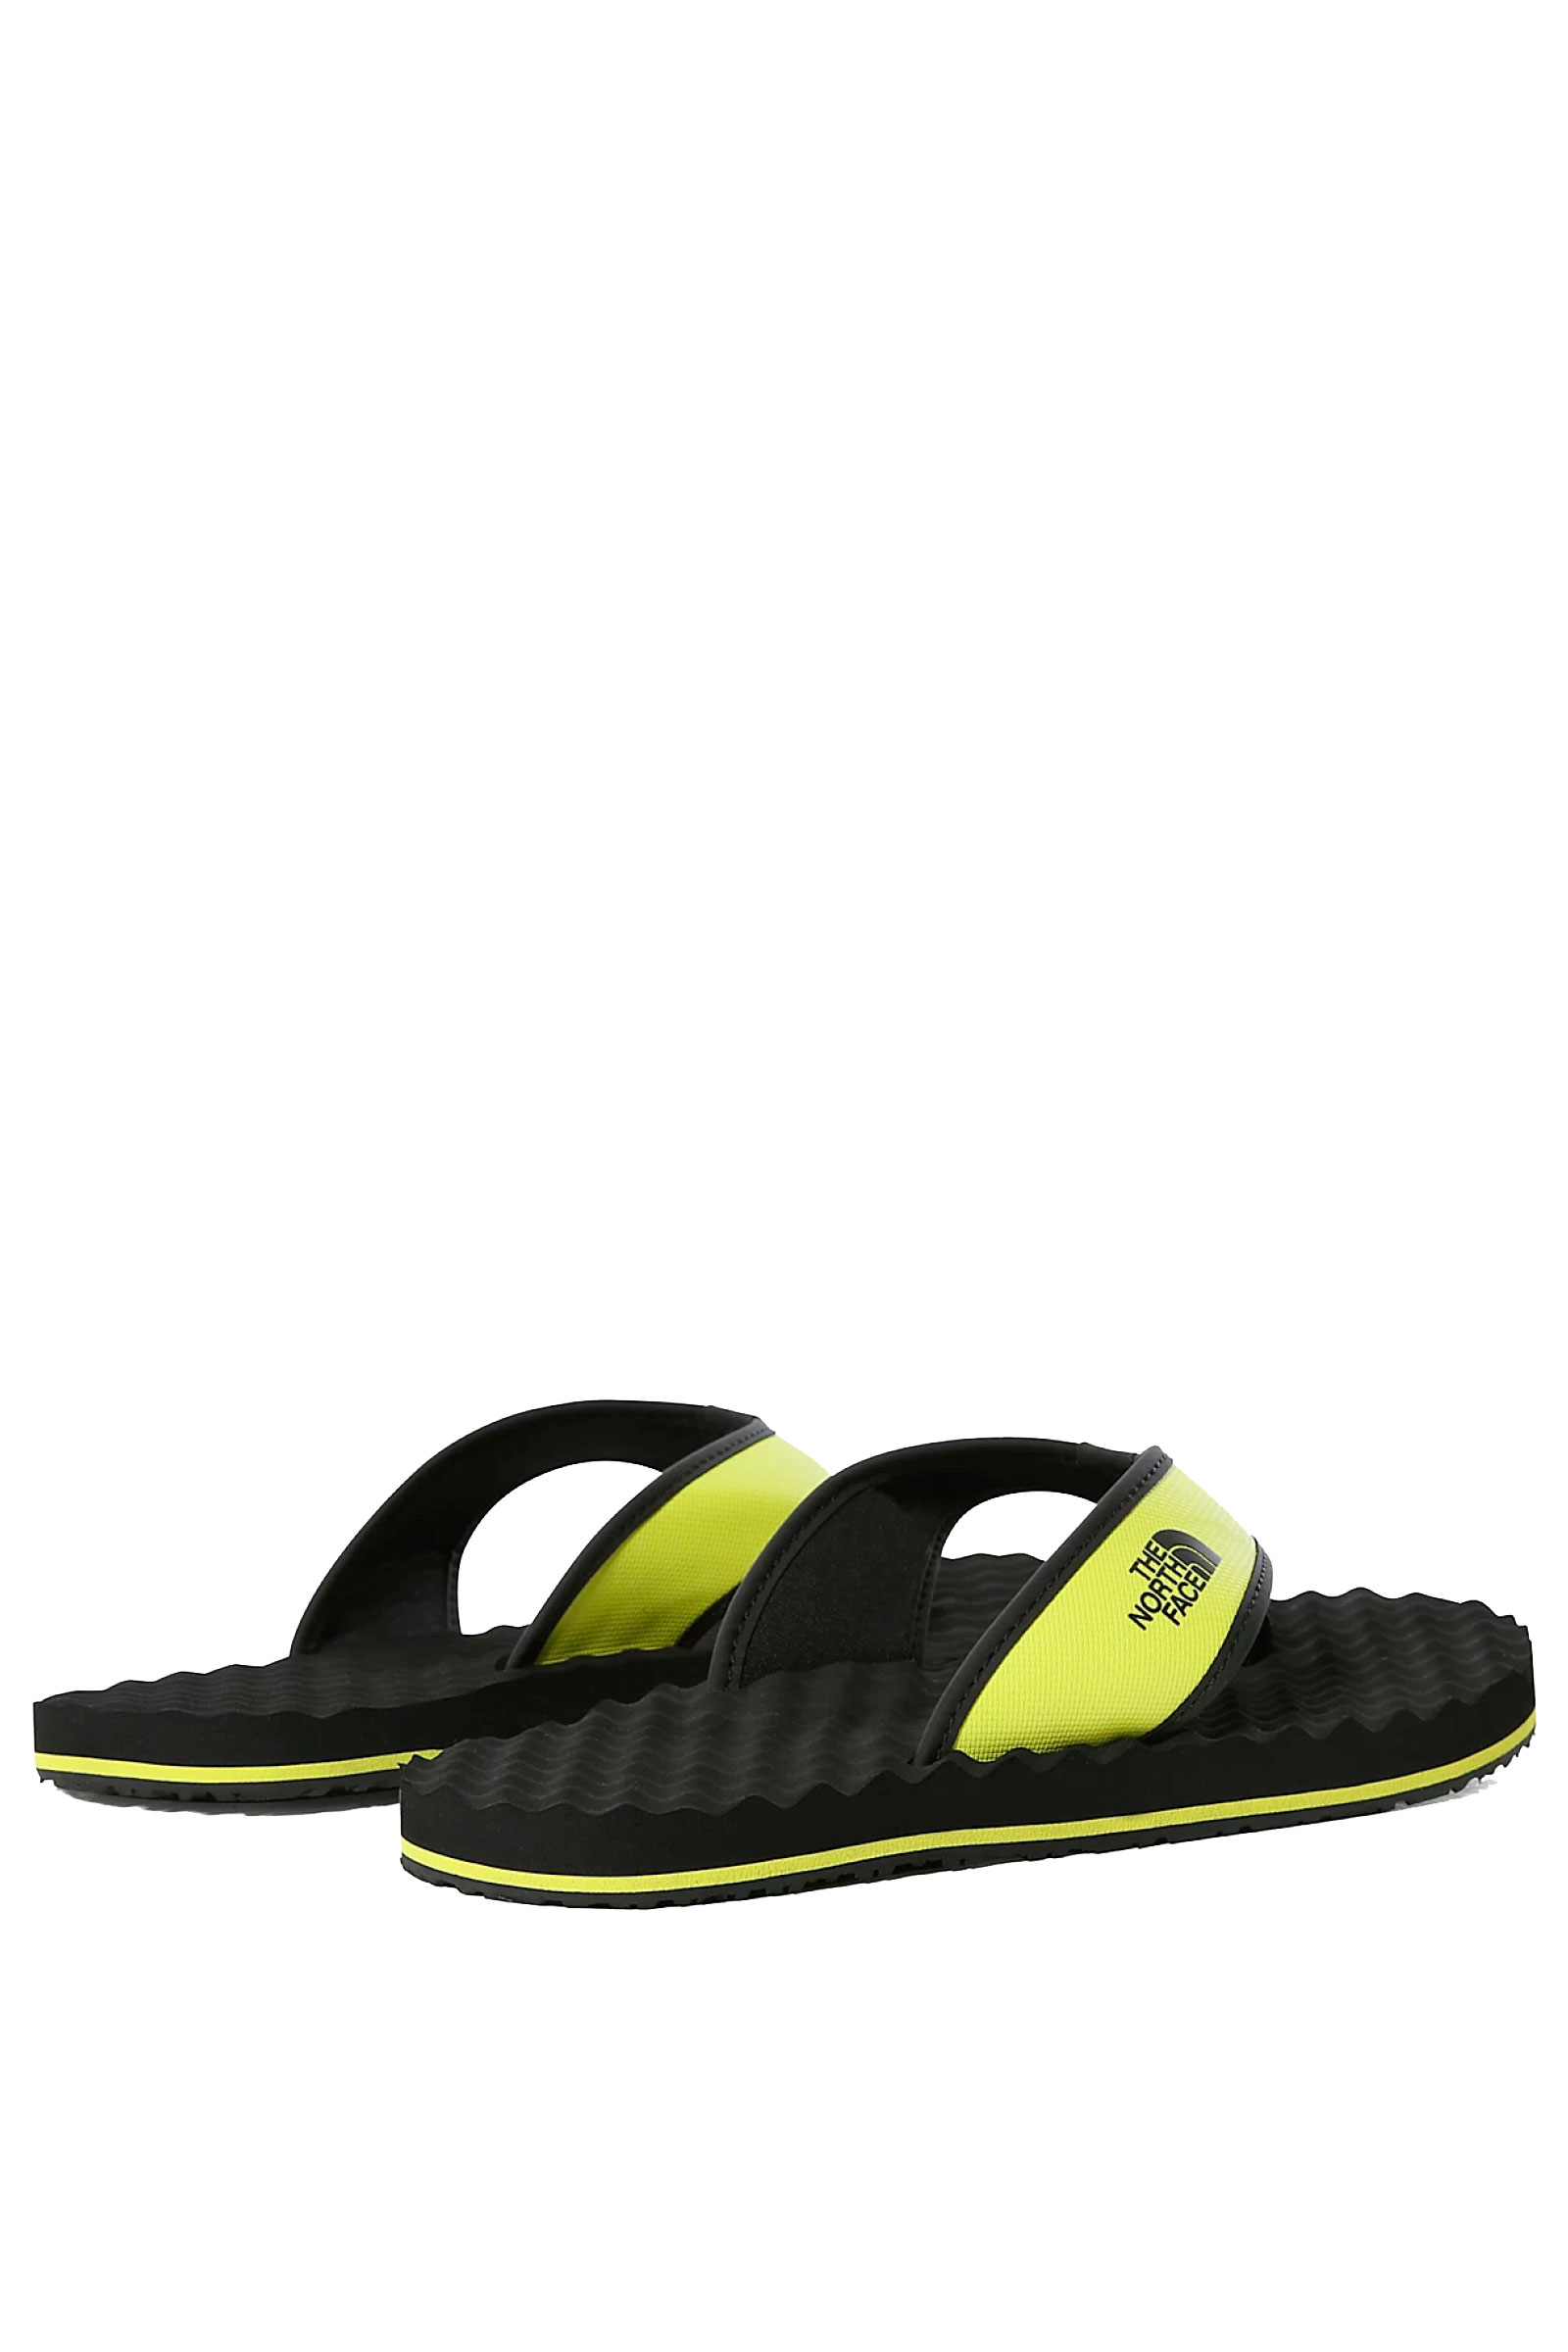 THE NORTH FACE Infradito Uomo THE NORTH FACE   Infradito   NF0A47AAC5W1